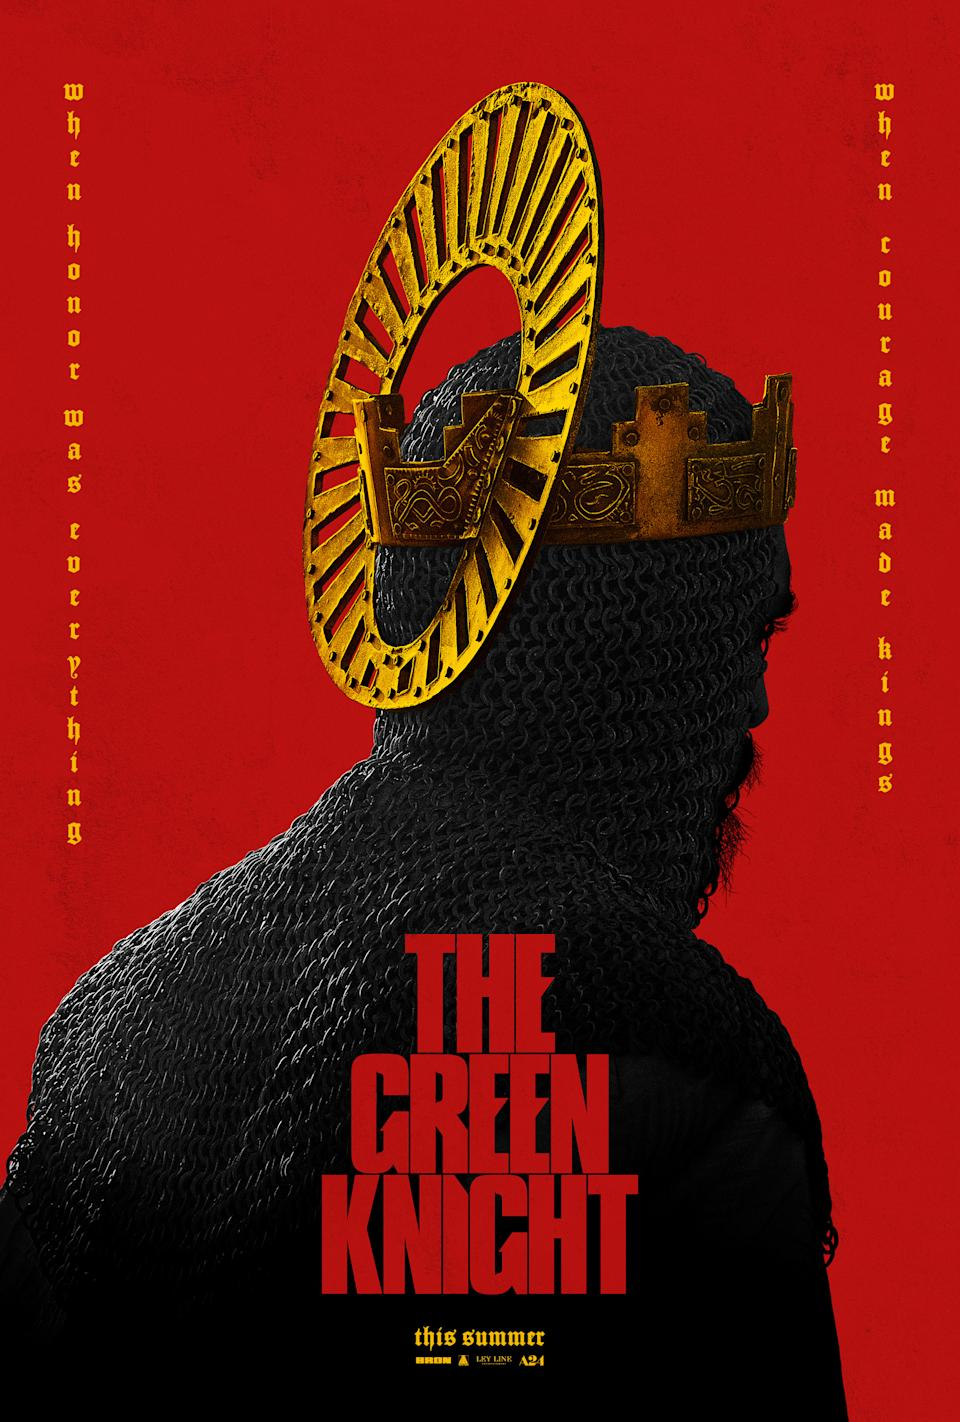 The US poster for A24's The Green Knight. (A24)